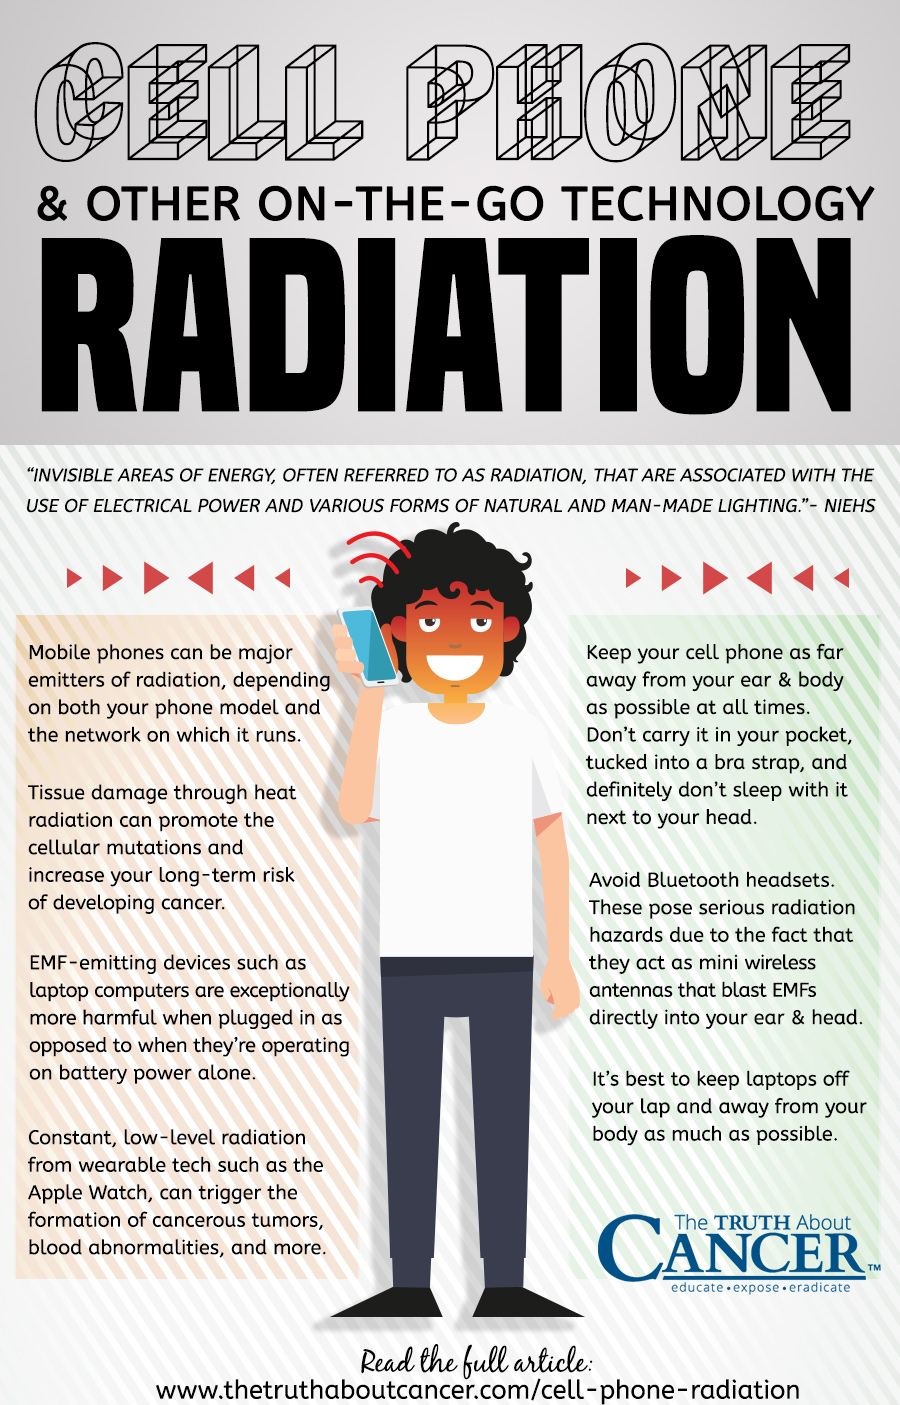 Become aware of the sources and dangers of cell phone radiation and EMFs.